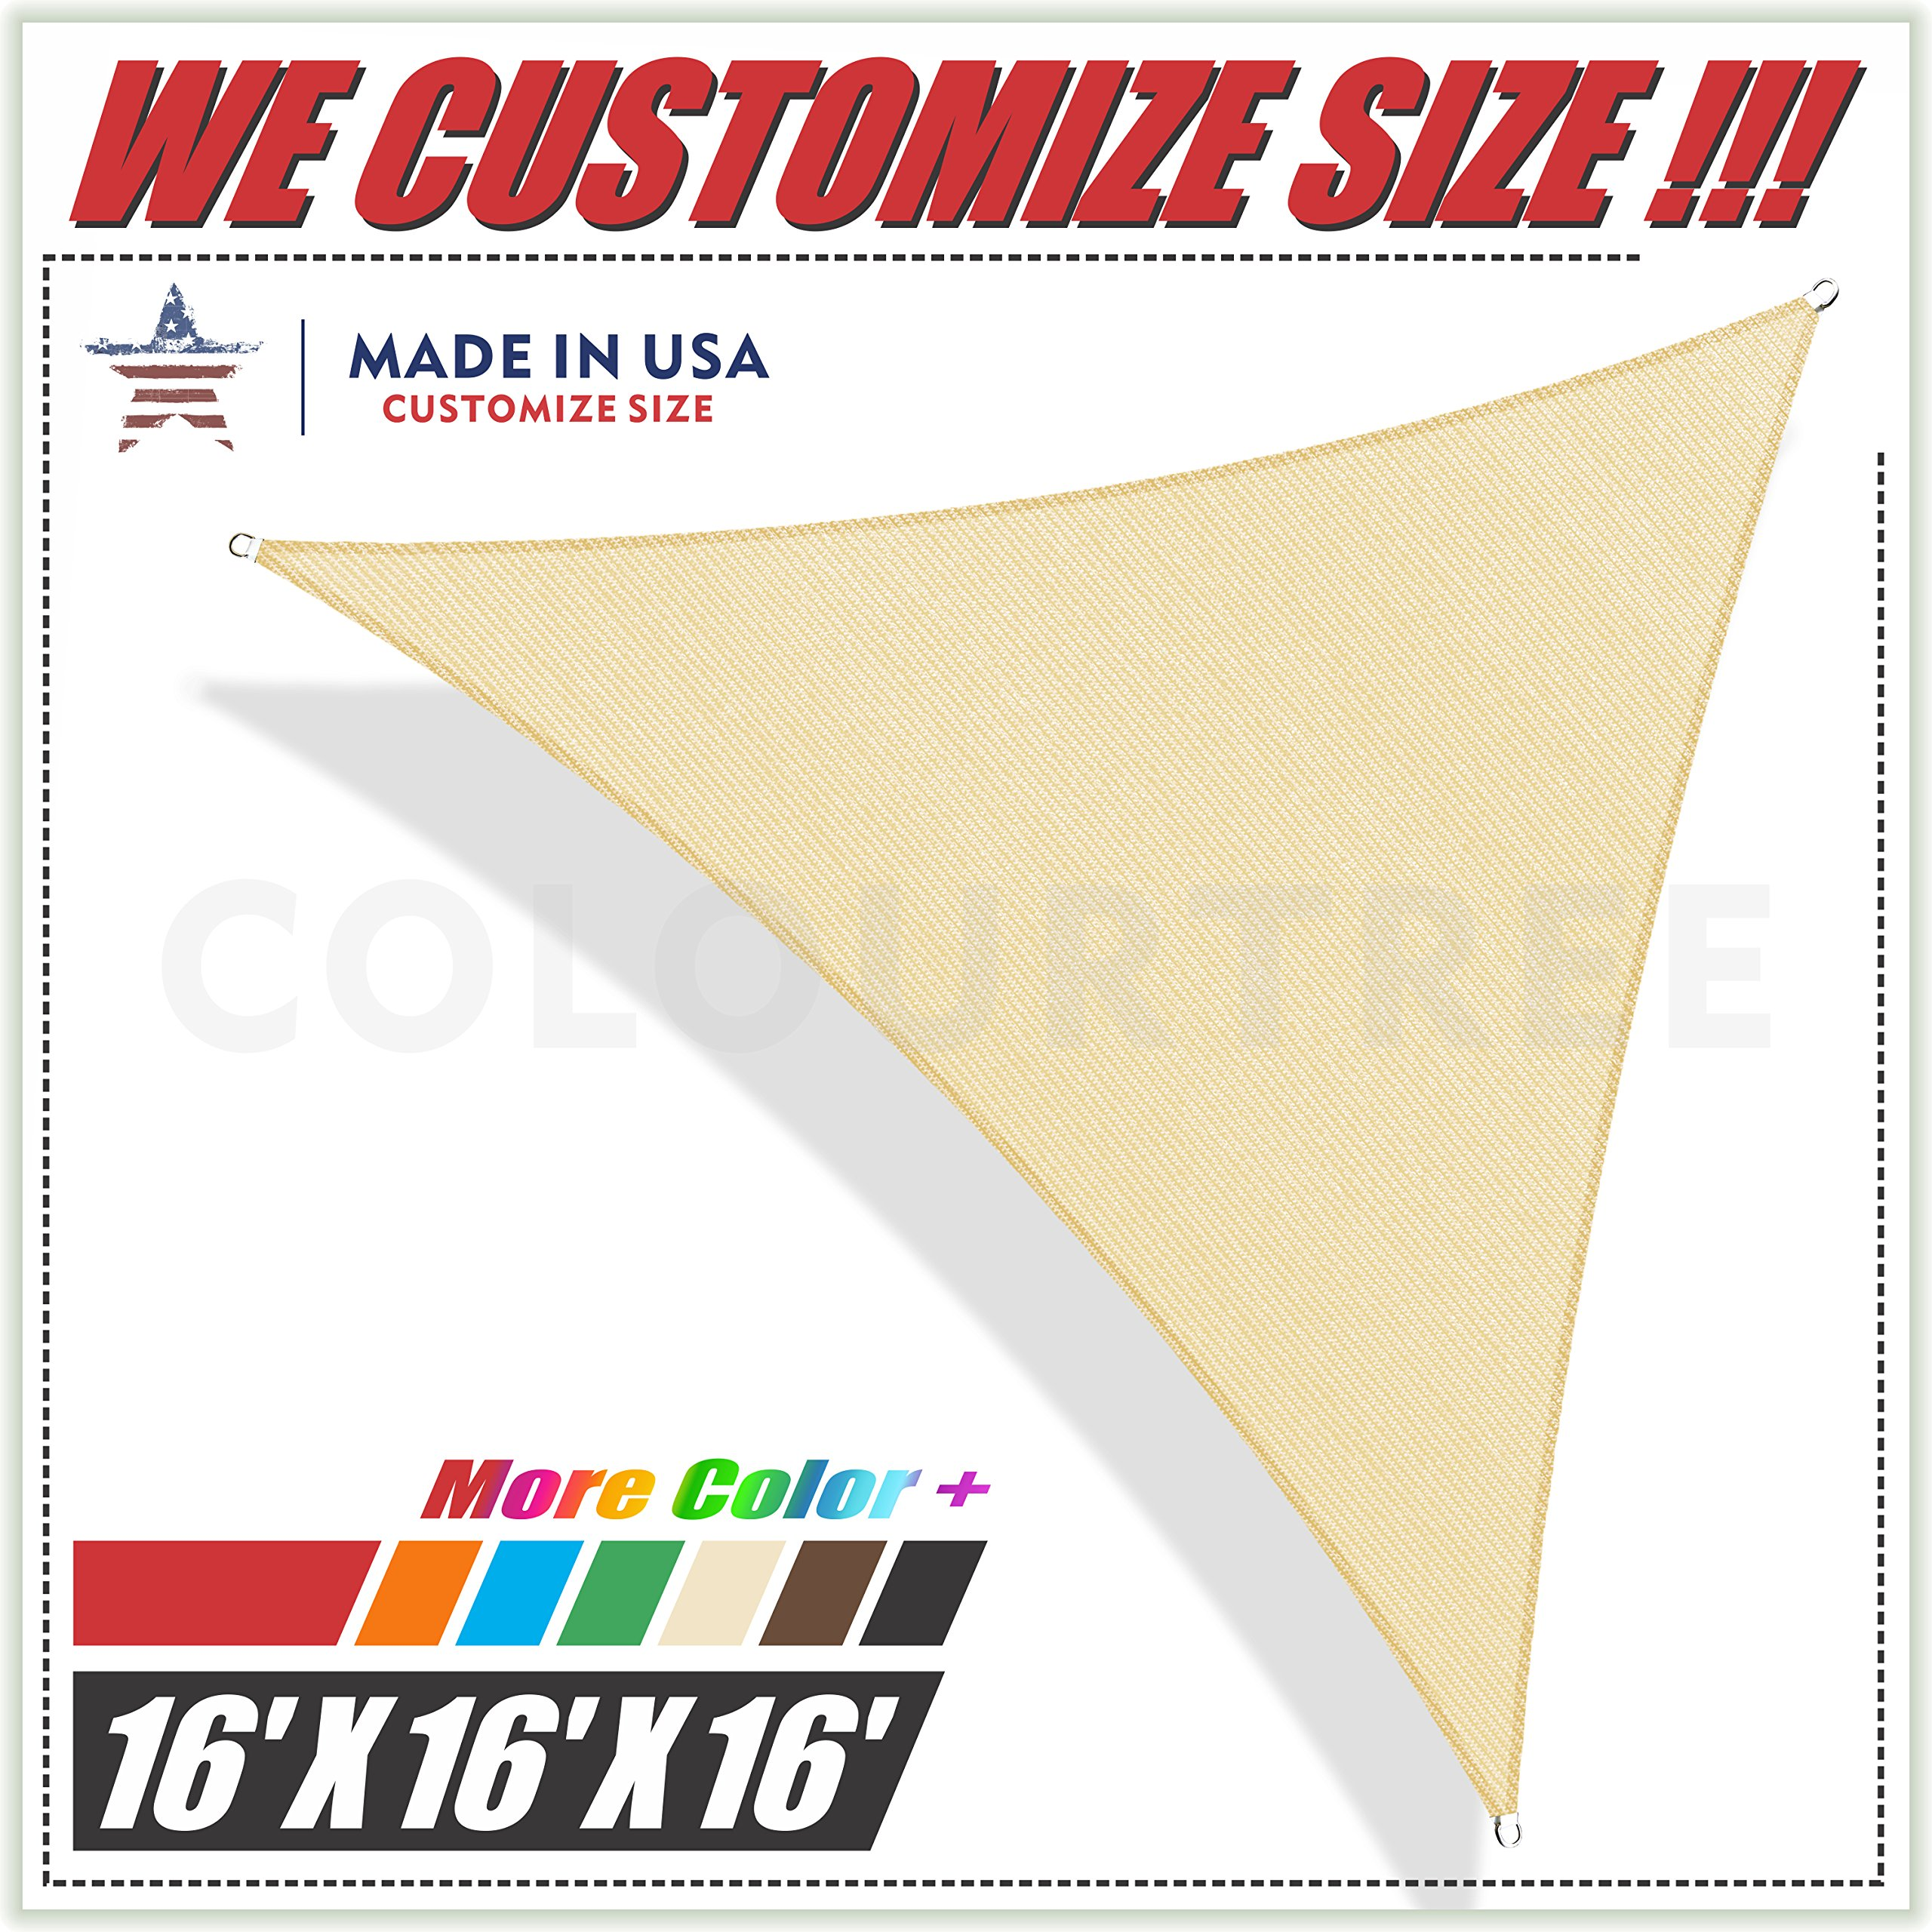 ColourTree 16' x 16' x 16' Beige Sun Shade Sail Triangle Canopy, UV Resistant Heavy Duty Commercial Grade, We Make Custom Size by ColourTree